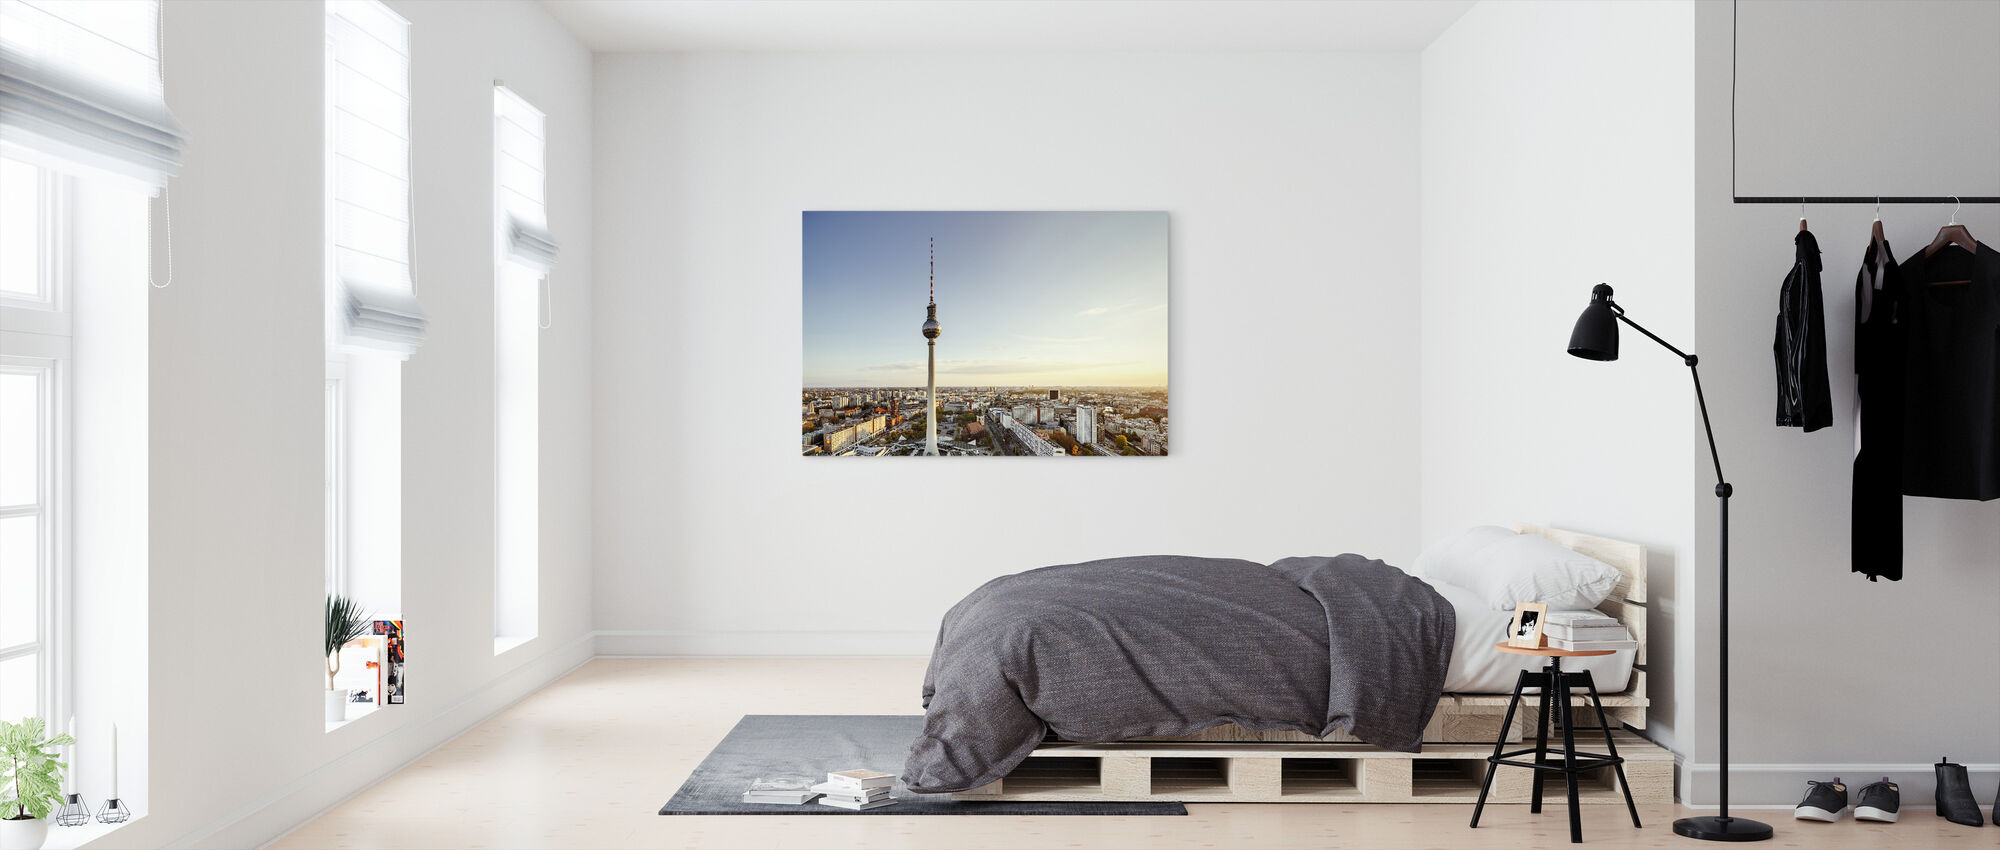 Berlin Tv Tower at Sunset - Canvas print - Bedroom